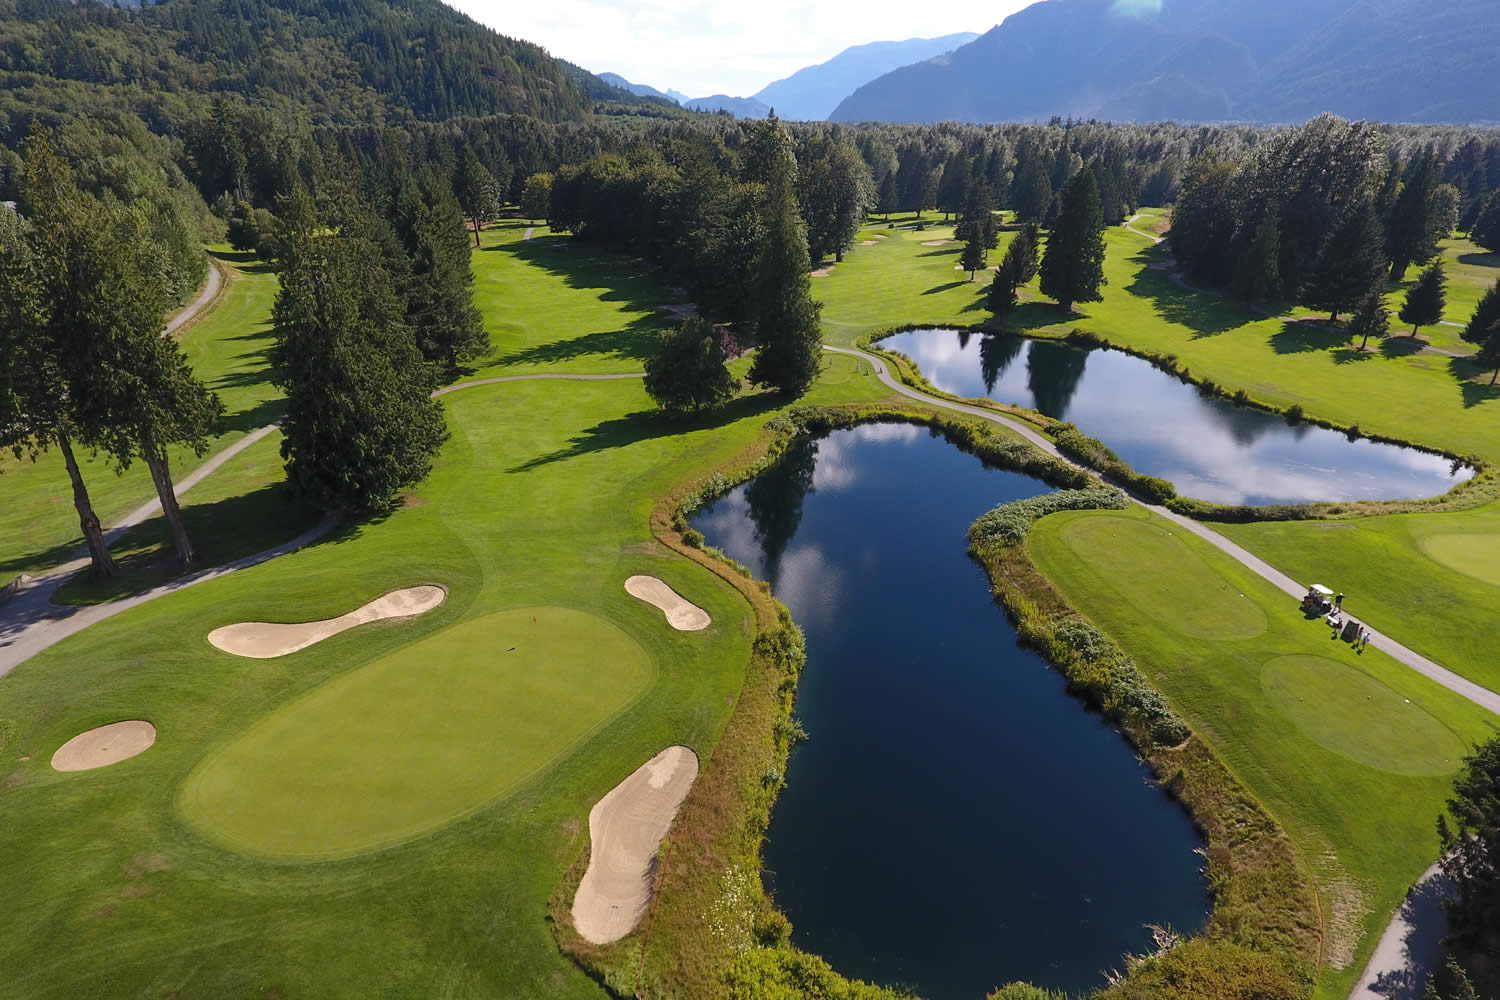 Squamish golf